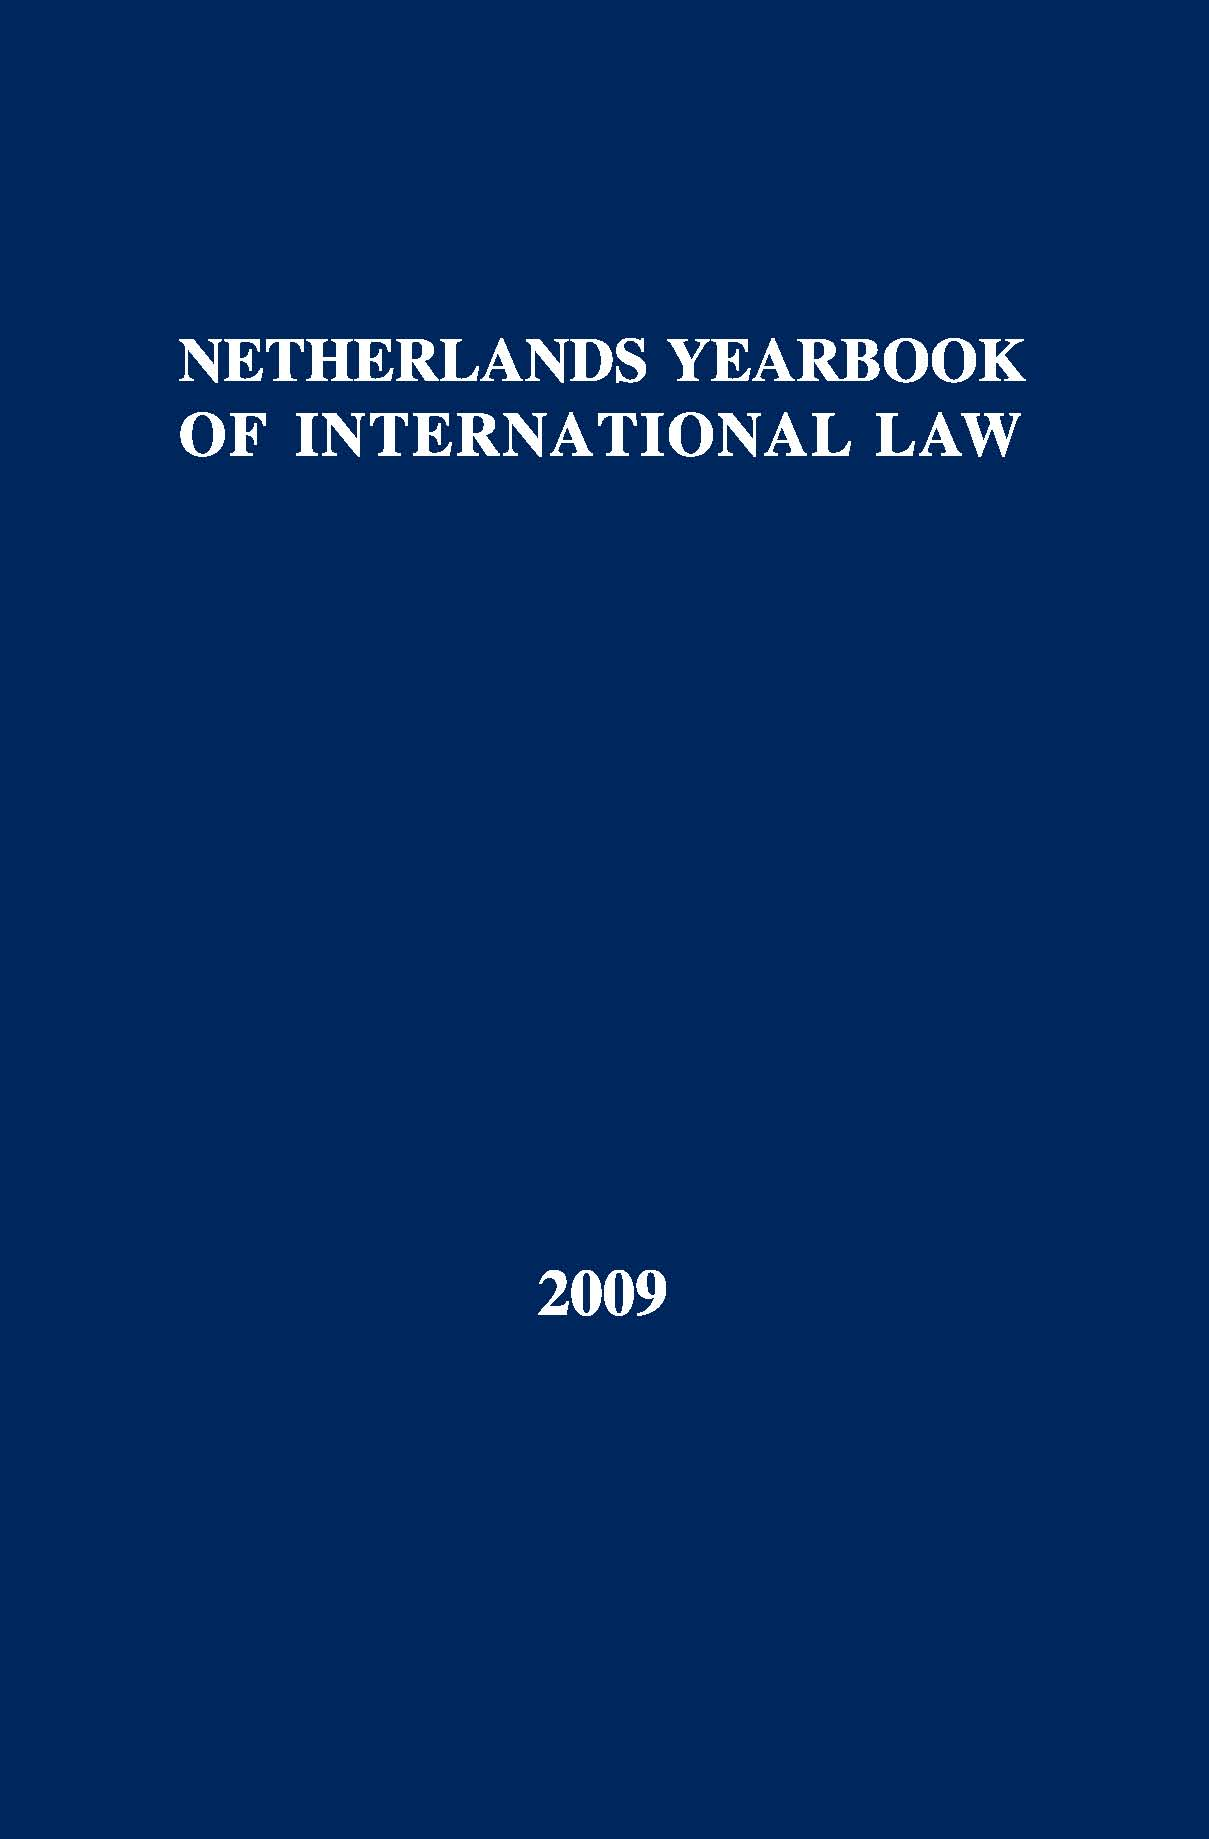 Netherlands Yearbook of International Law - Volume 40, 2009